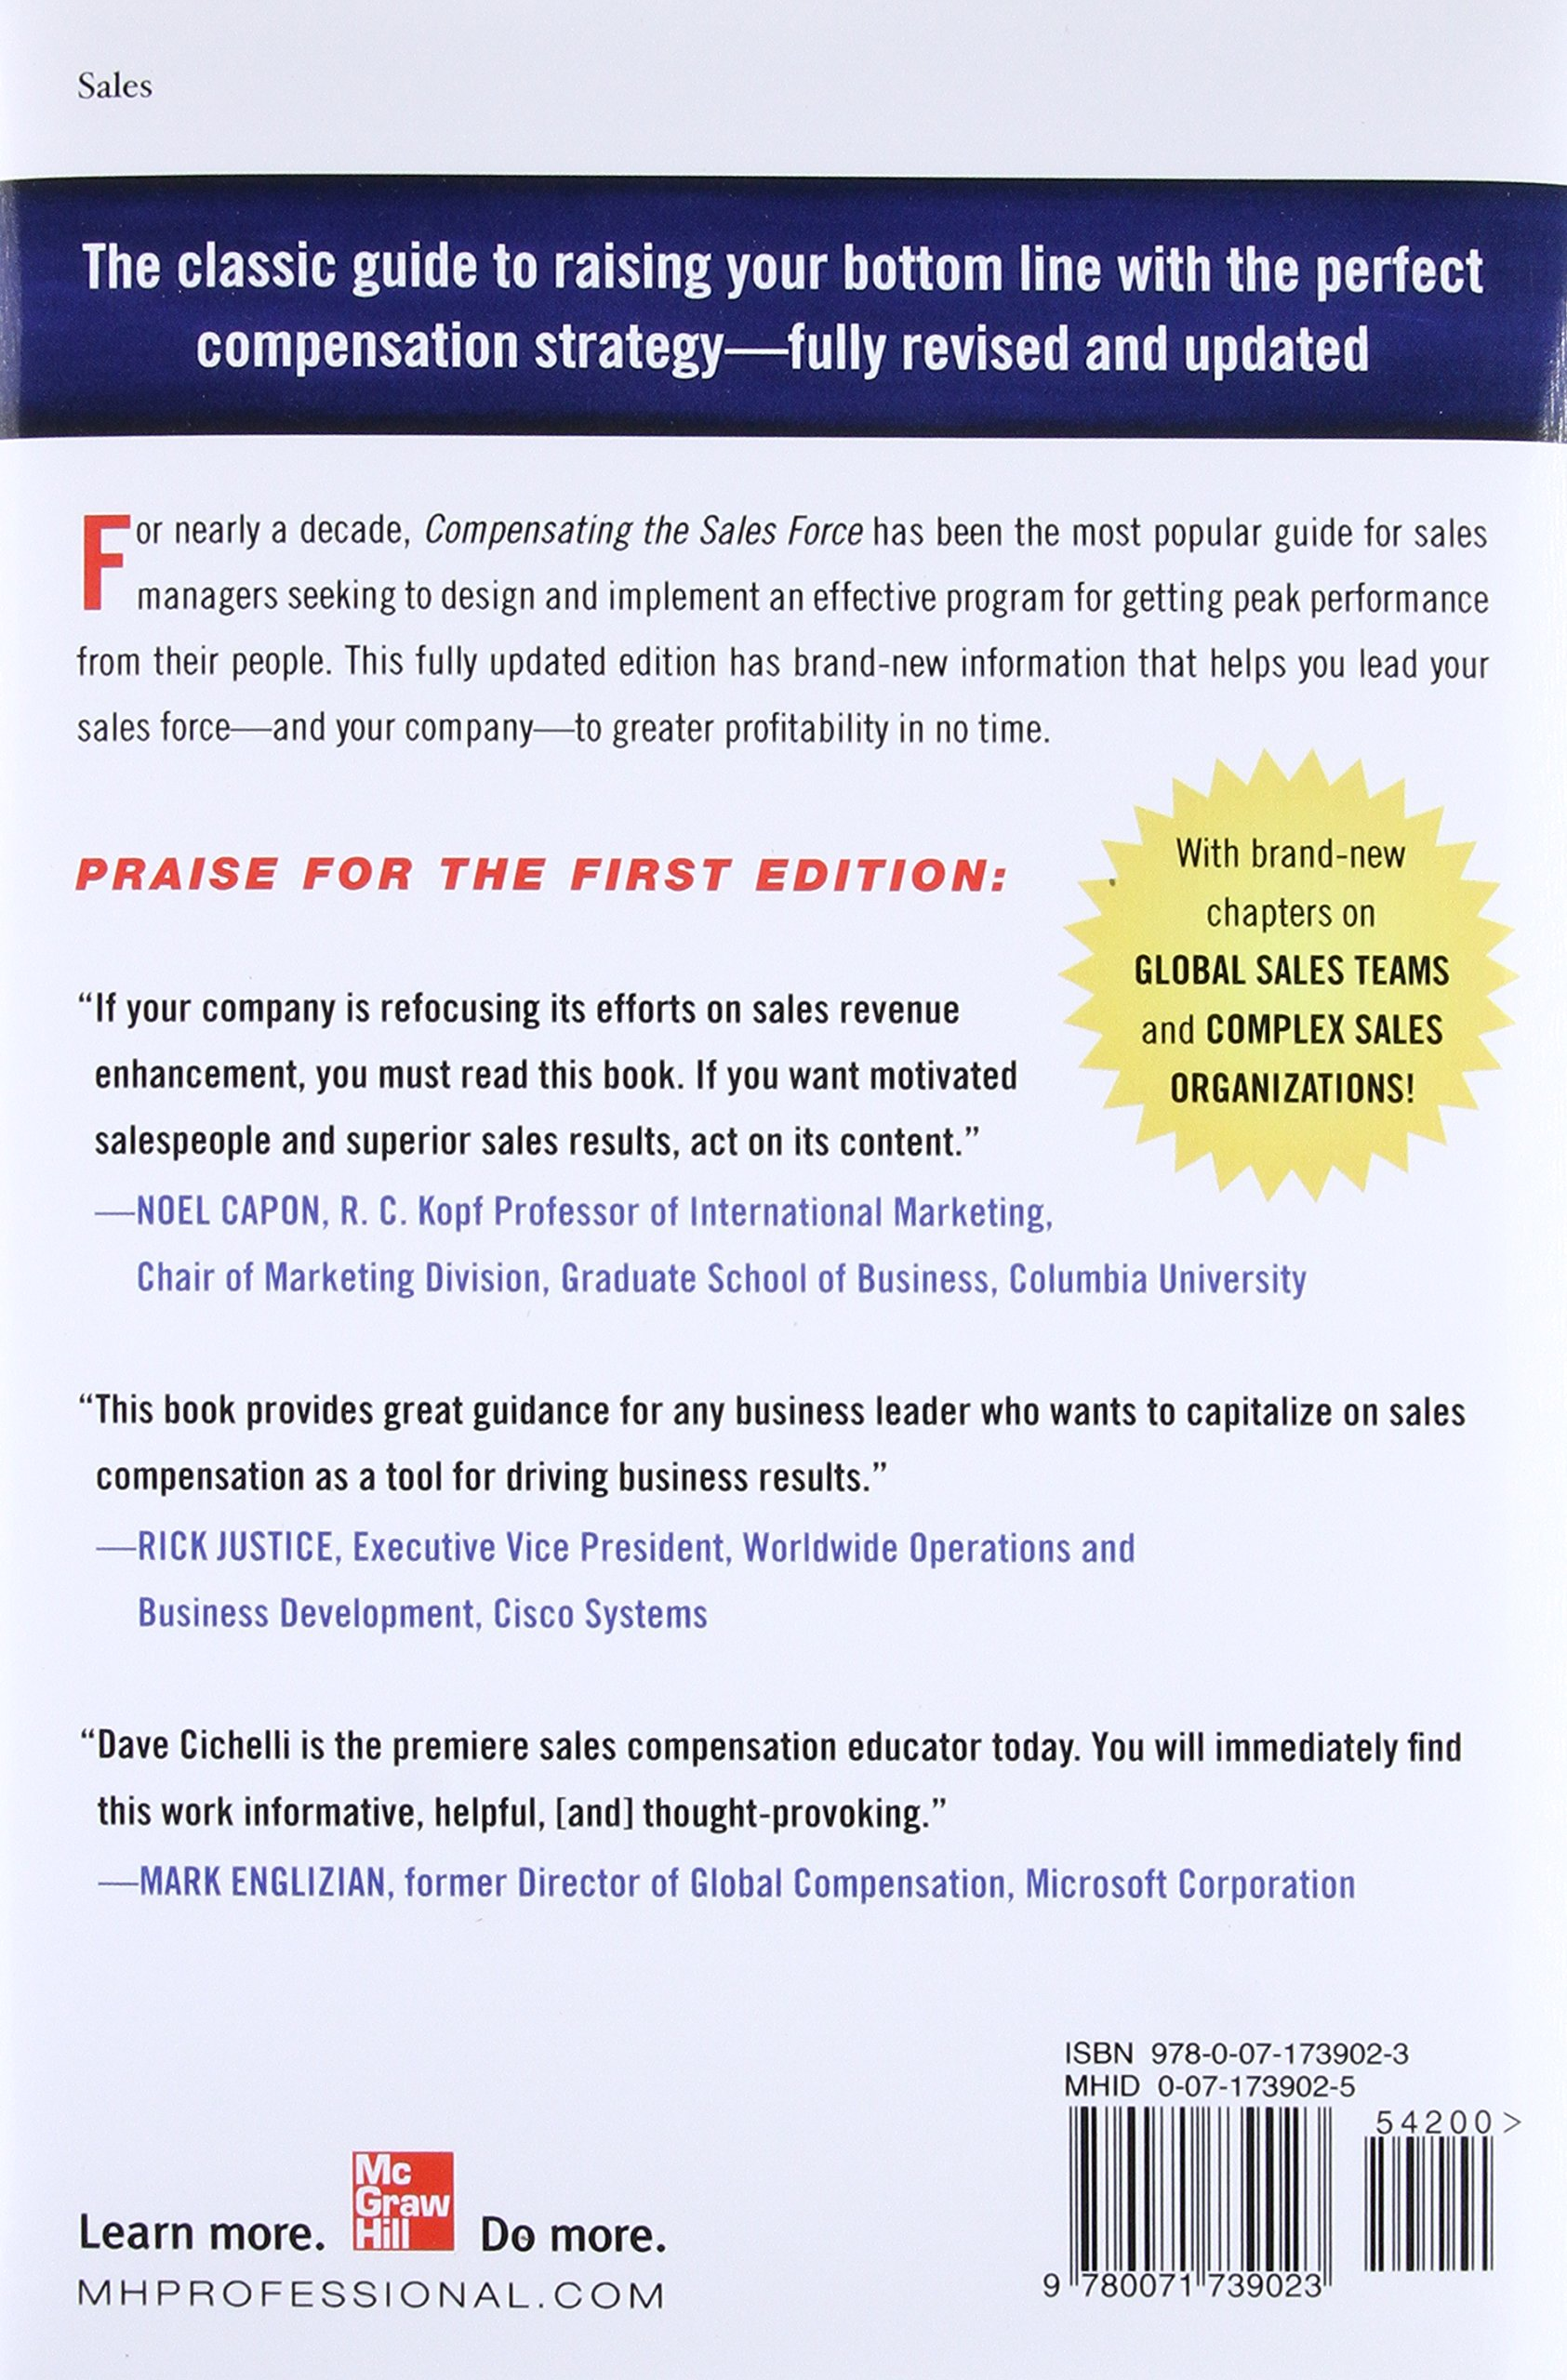 Compensating the sales force a practical guide to designing compensating the sales force a practical guide to designing winning sales reward programs second edition david j cichelli 9780071739023 amazon fandeluxe Choice Image